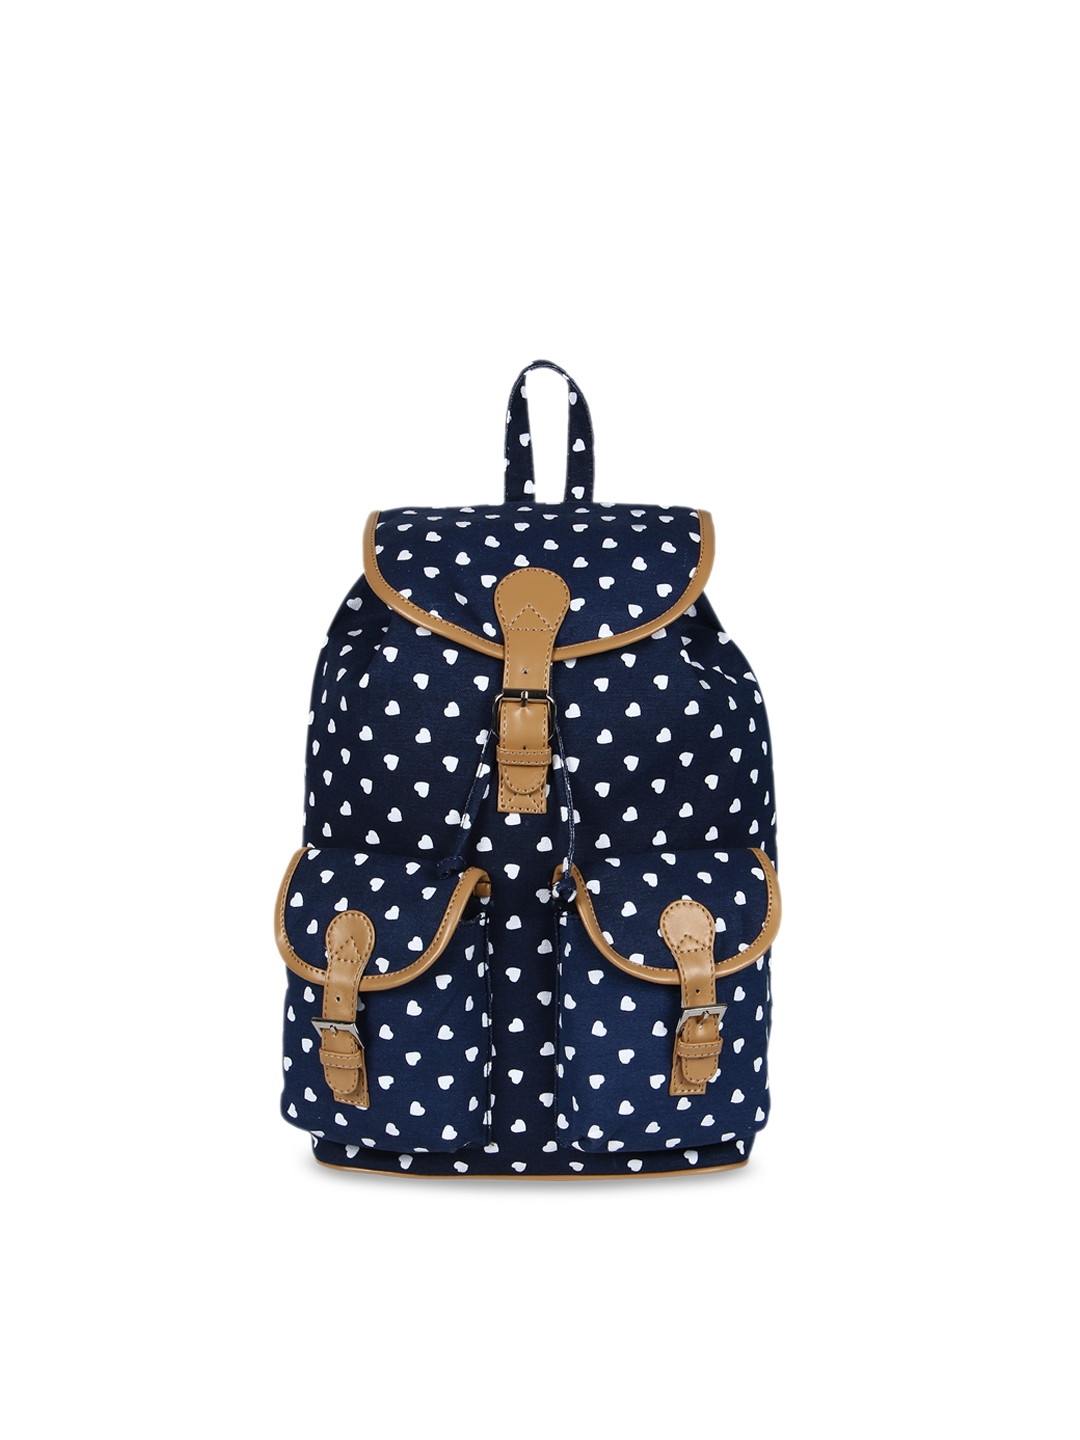 Lychee bags Blue Printed Shoulder Bag